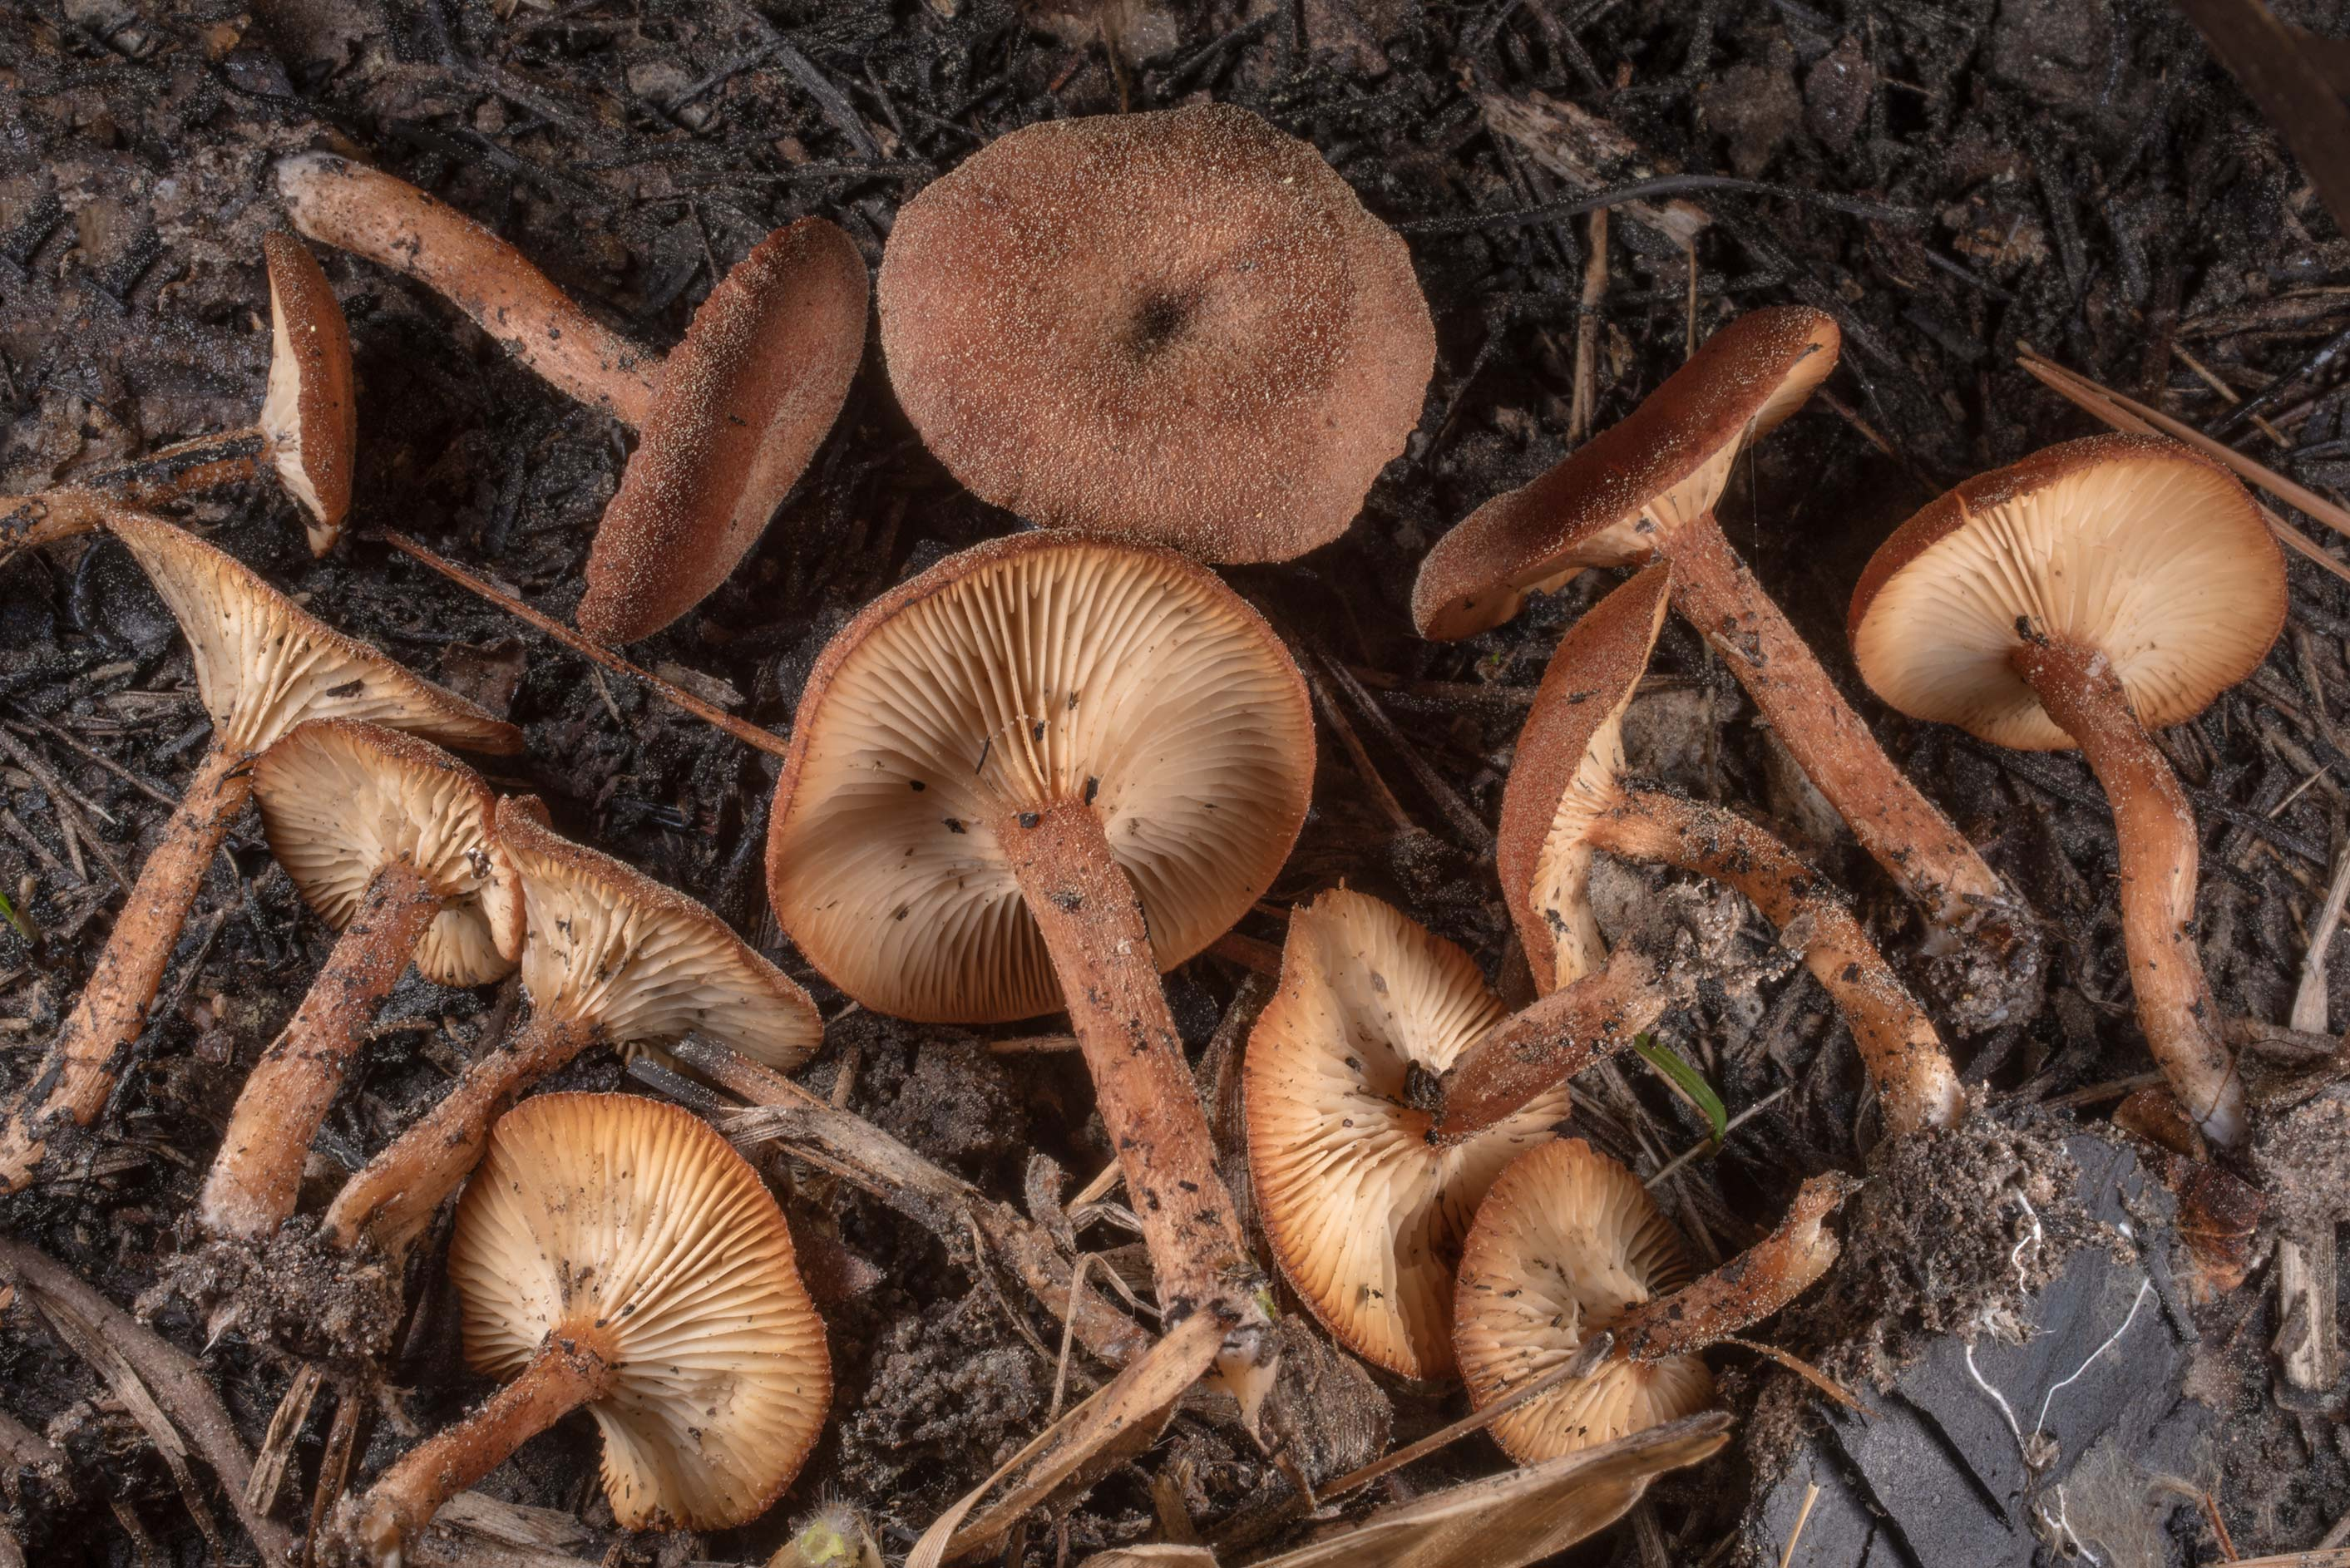 Brick-red Clitocybe mushrooms (Clitocybe sinopica...in Sam Houston National Forest. Texas